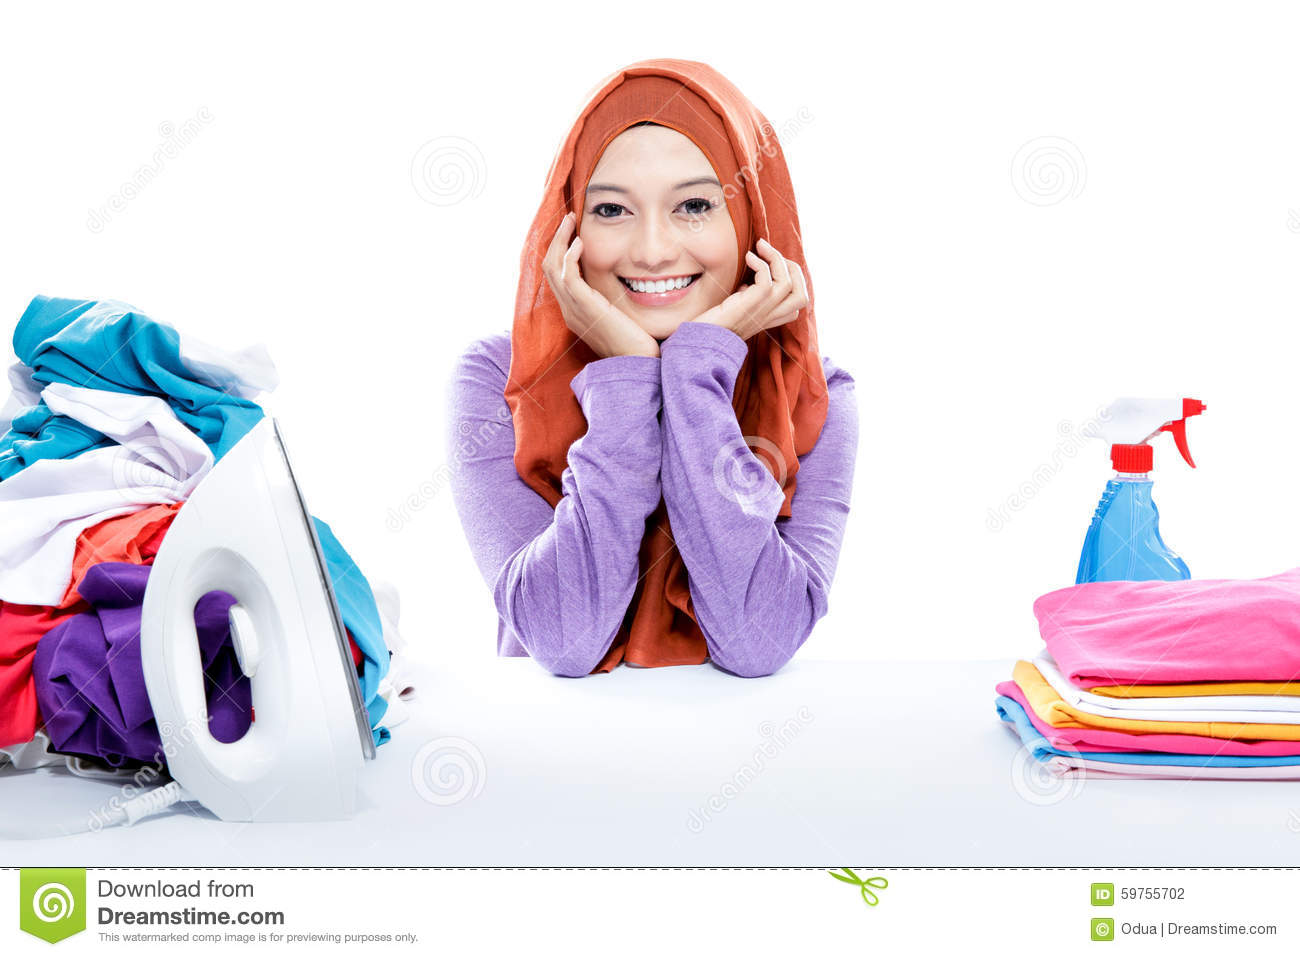 Phrase Bravo, Amateur housewife doing laundry consider